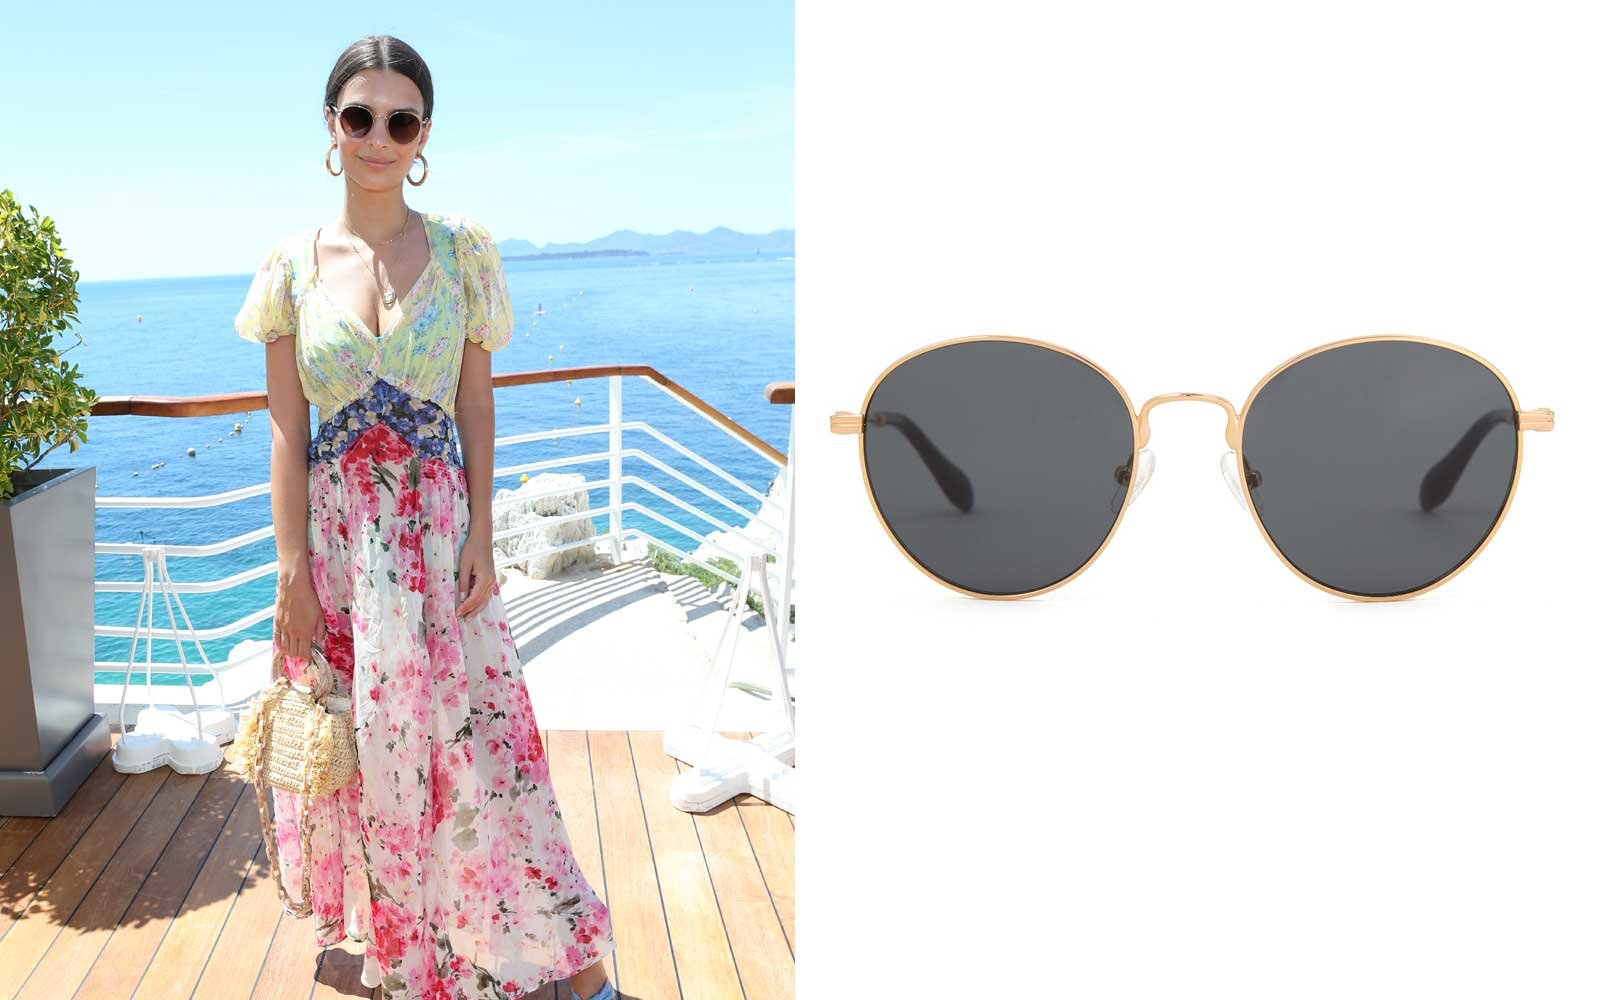 93e82b535c83 The Best Sunglasses According to Celebrities   Travel + Leisure